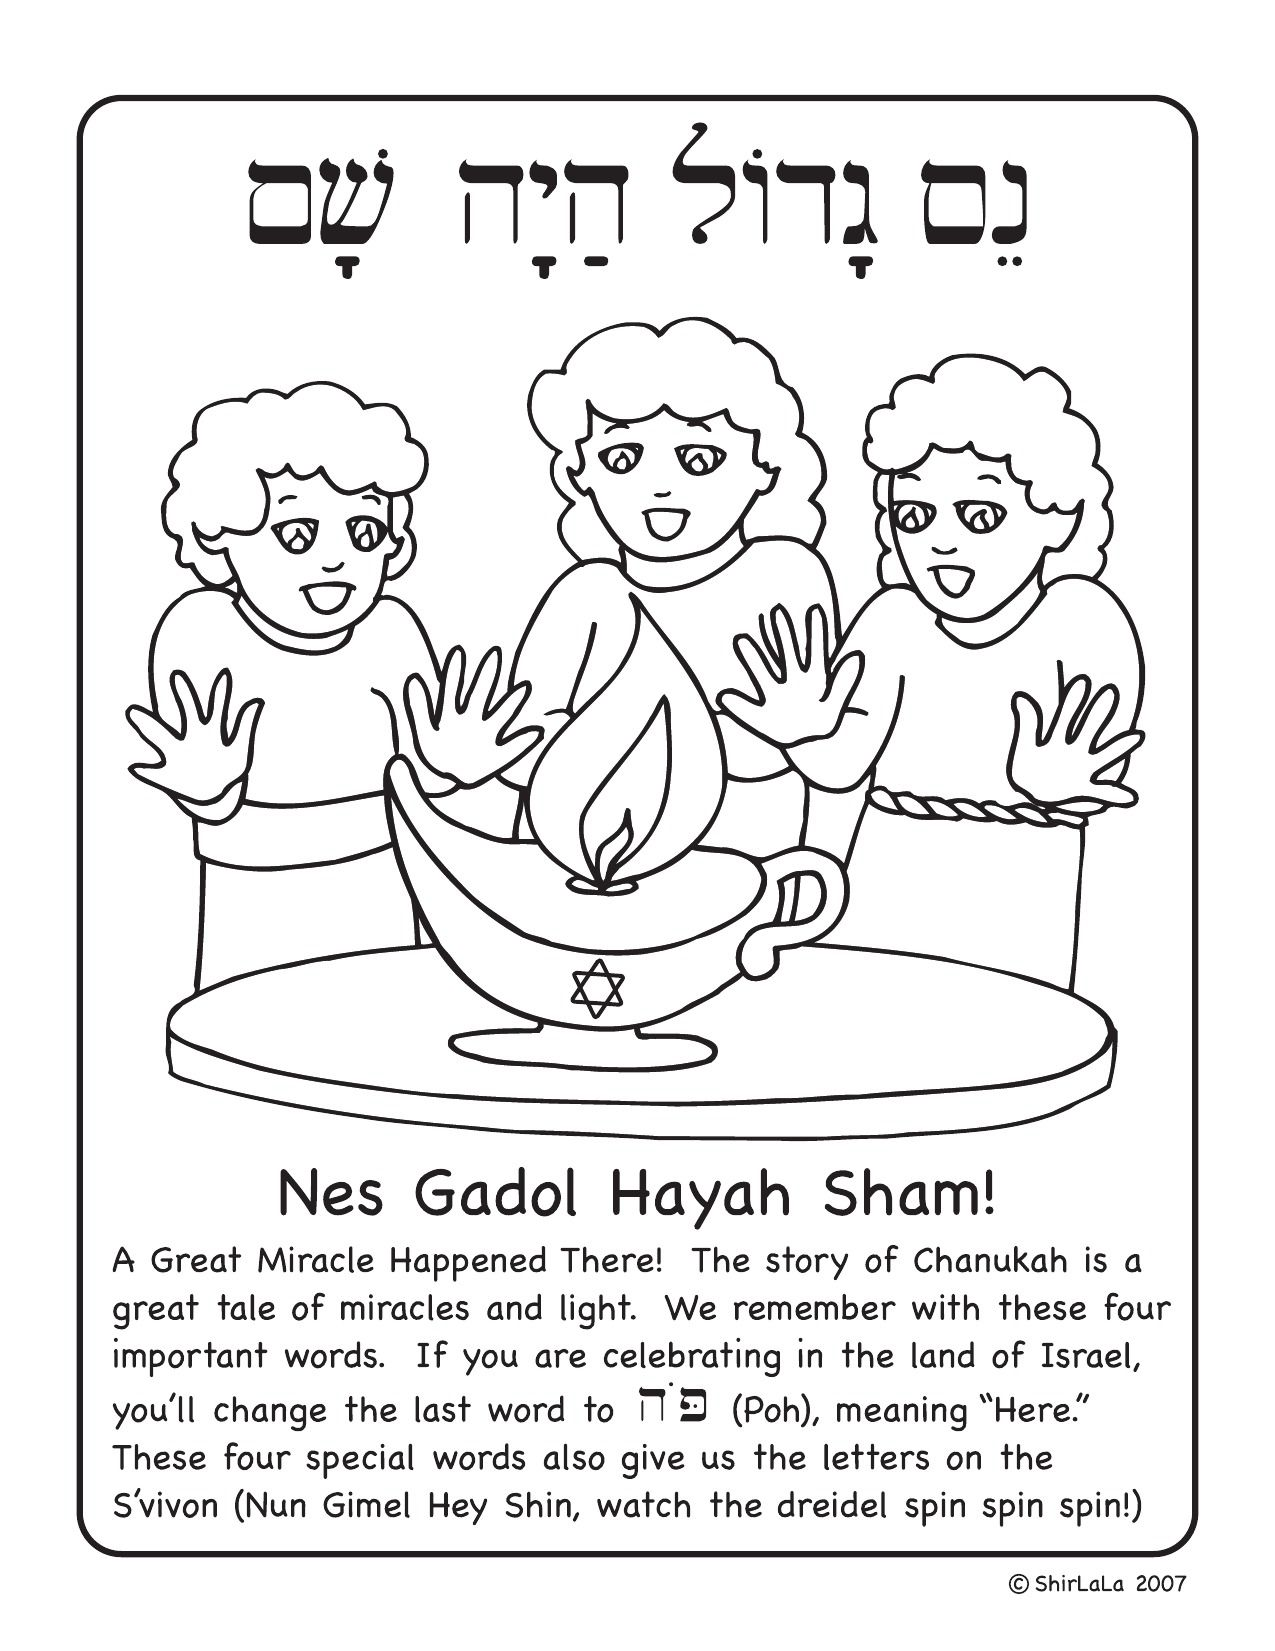 Shirlala Blog Sameach Free Printable Coloring Pages Jewish Crafts Different Holidays [ 1651 x 1275 Pixel ]